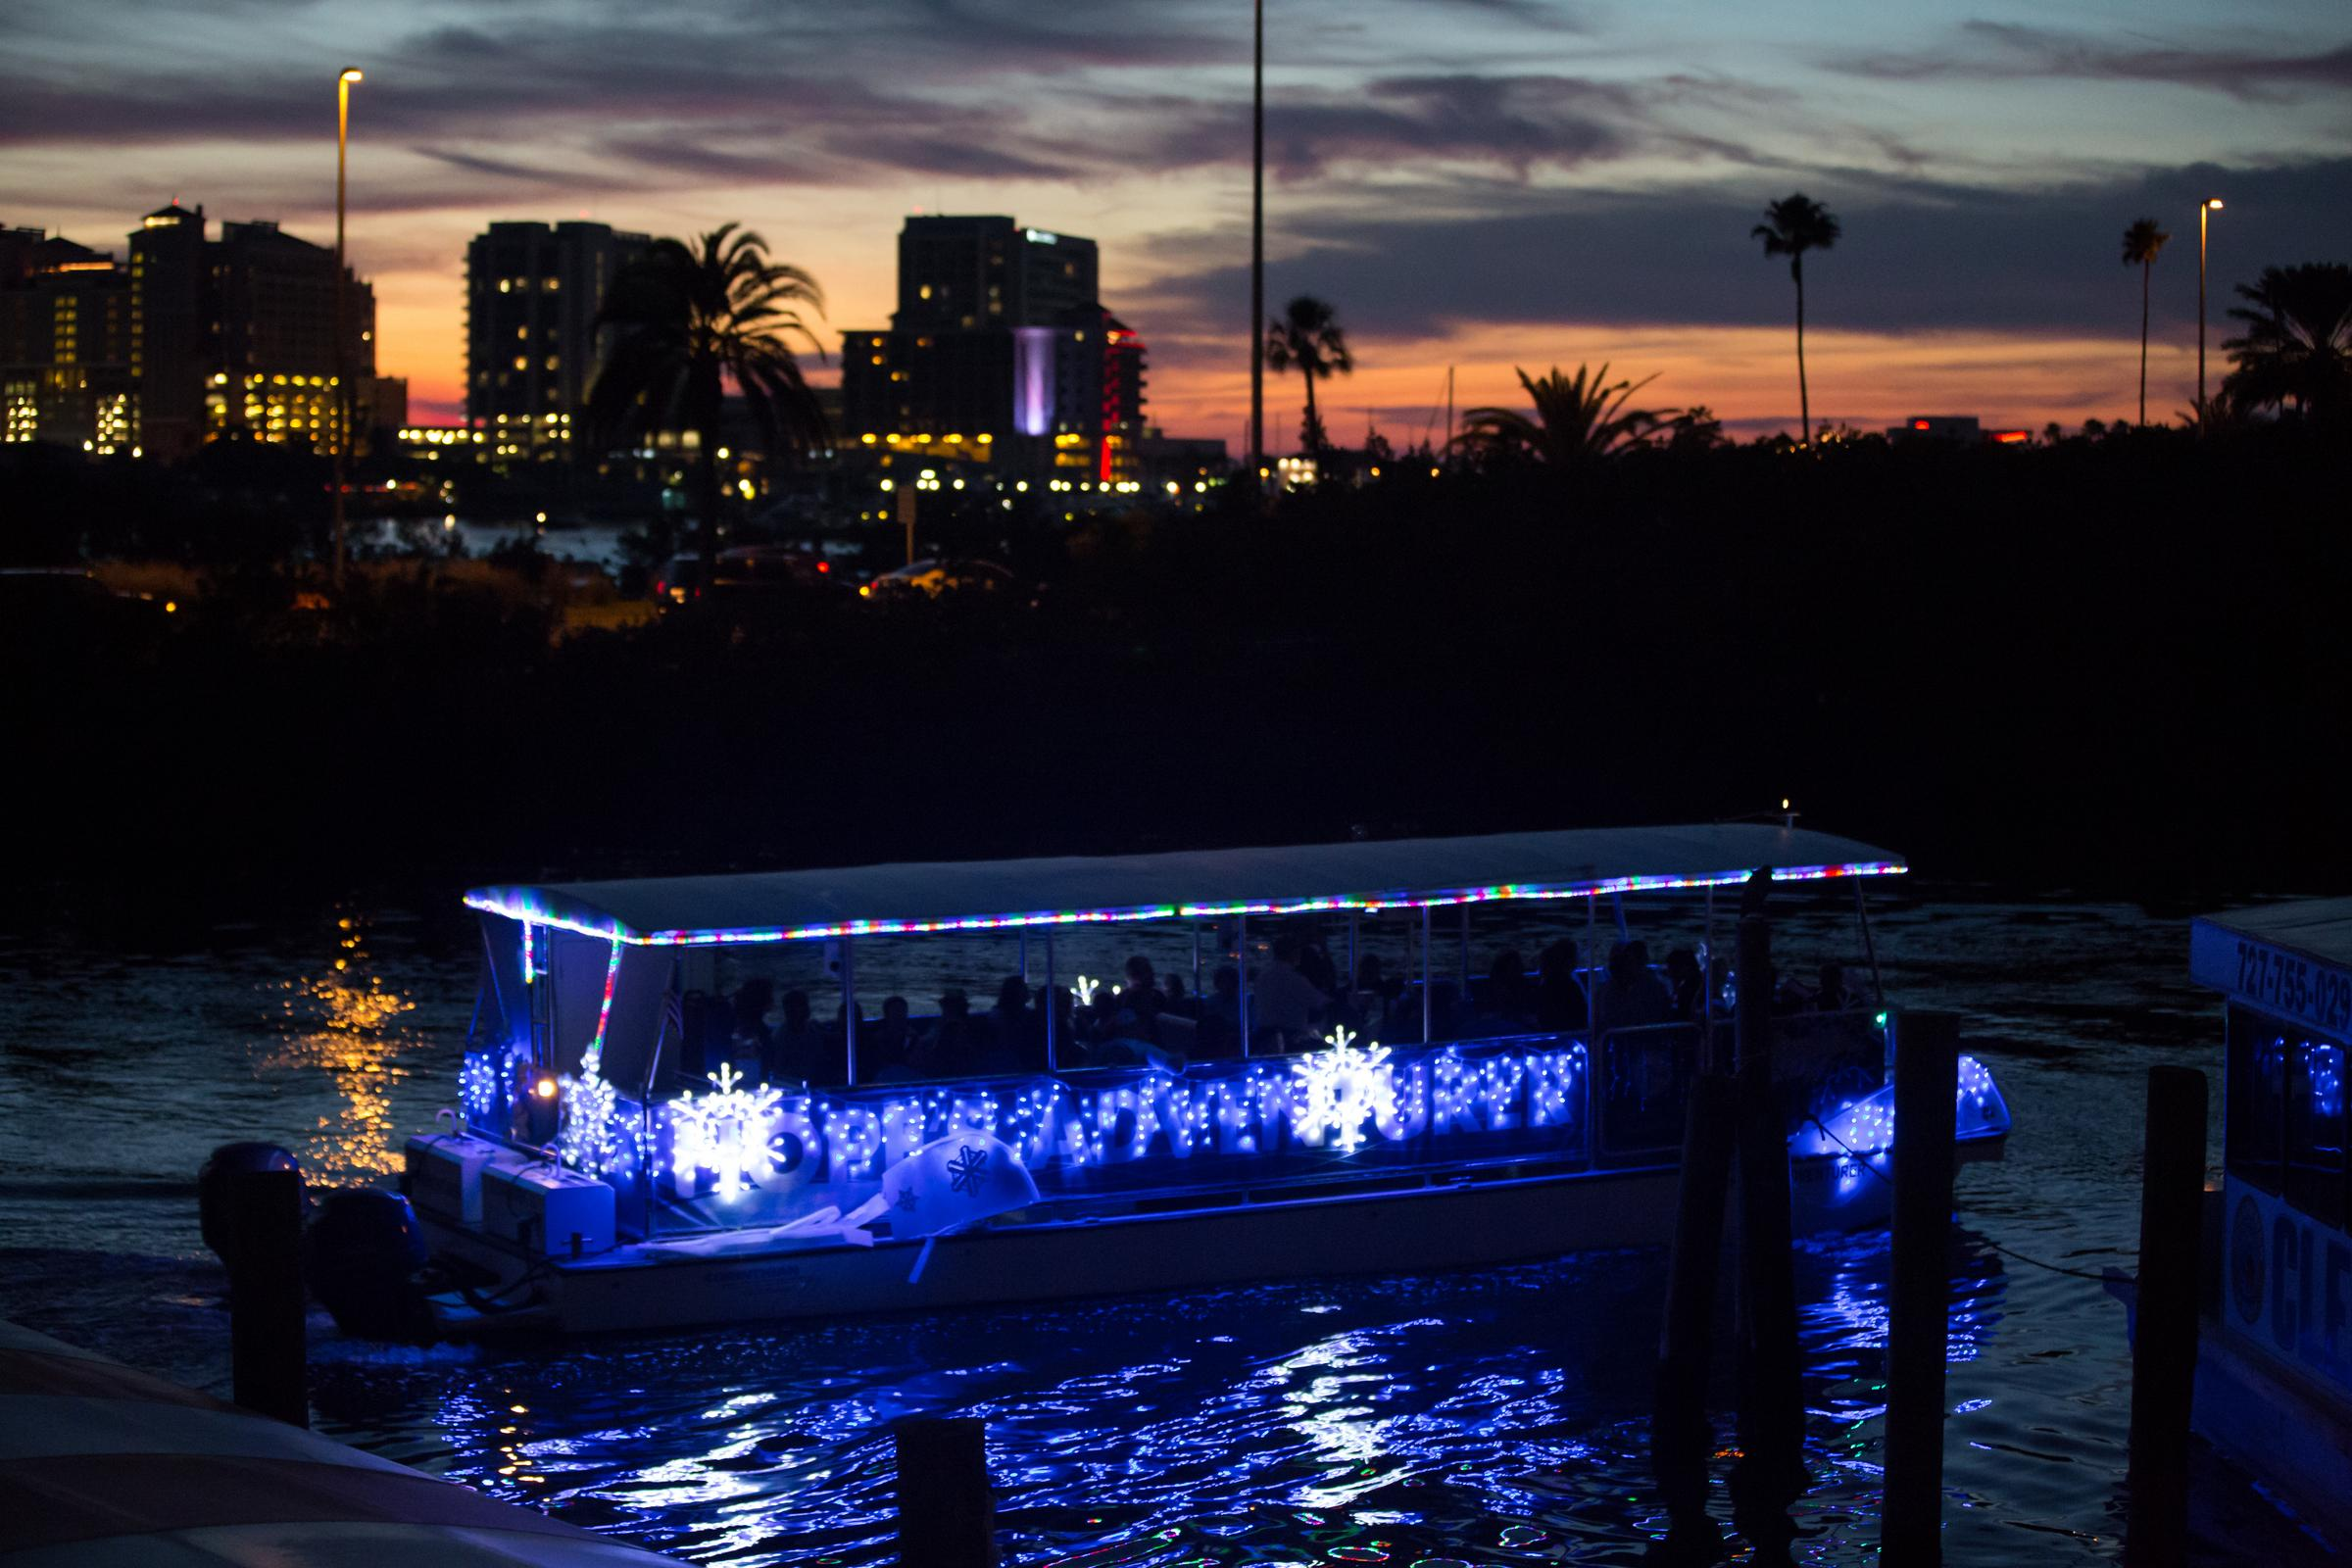 Sea of Lights Cruise